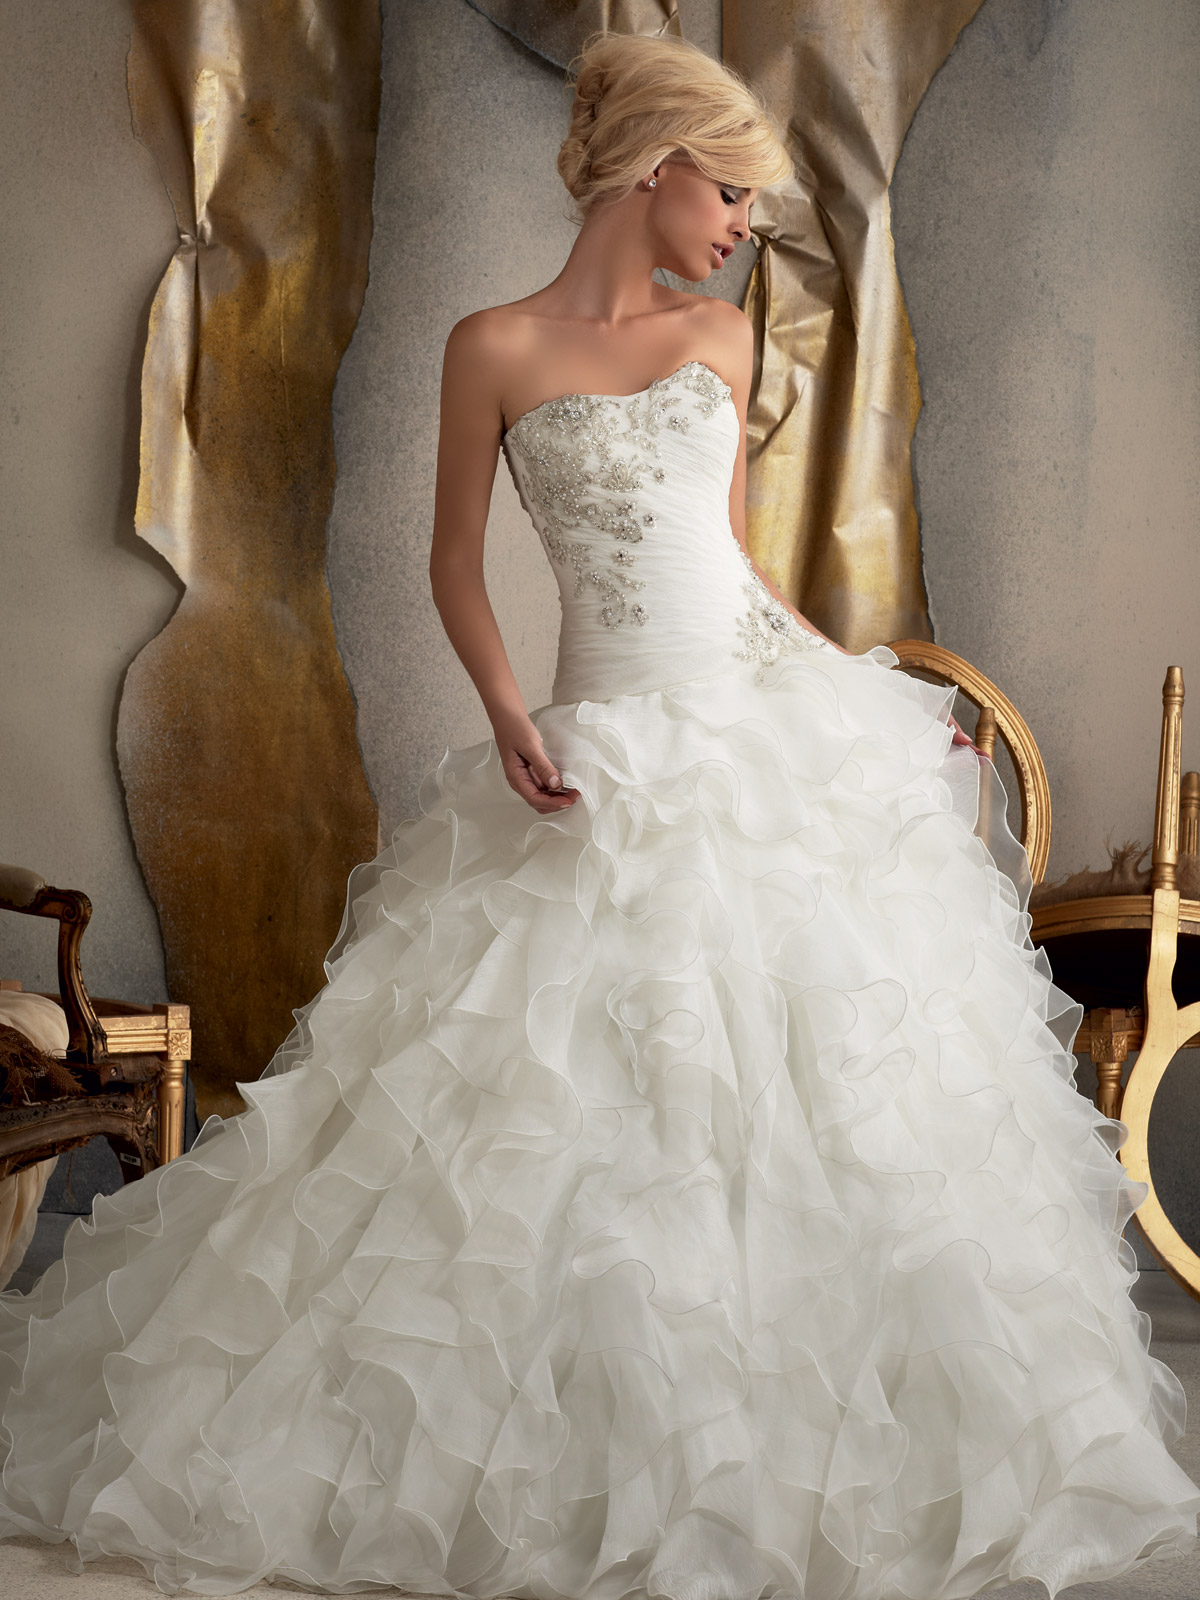 Strapless Ball Gown Mori Lee Bridal Gown 1910|DimitraDesigns.com